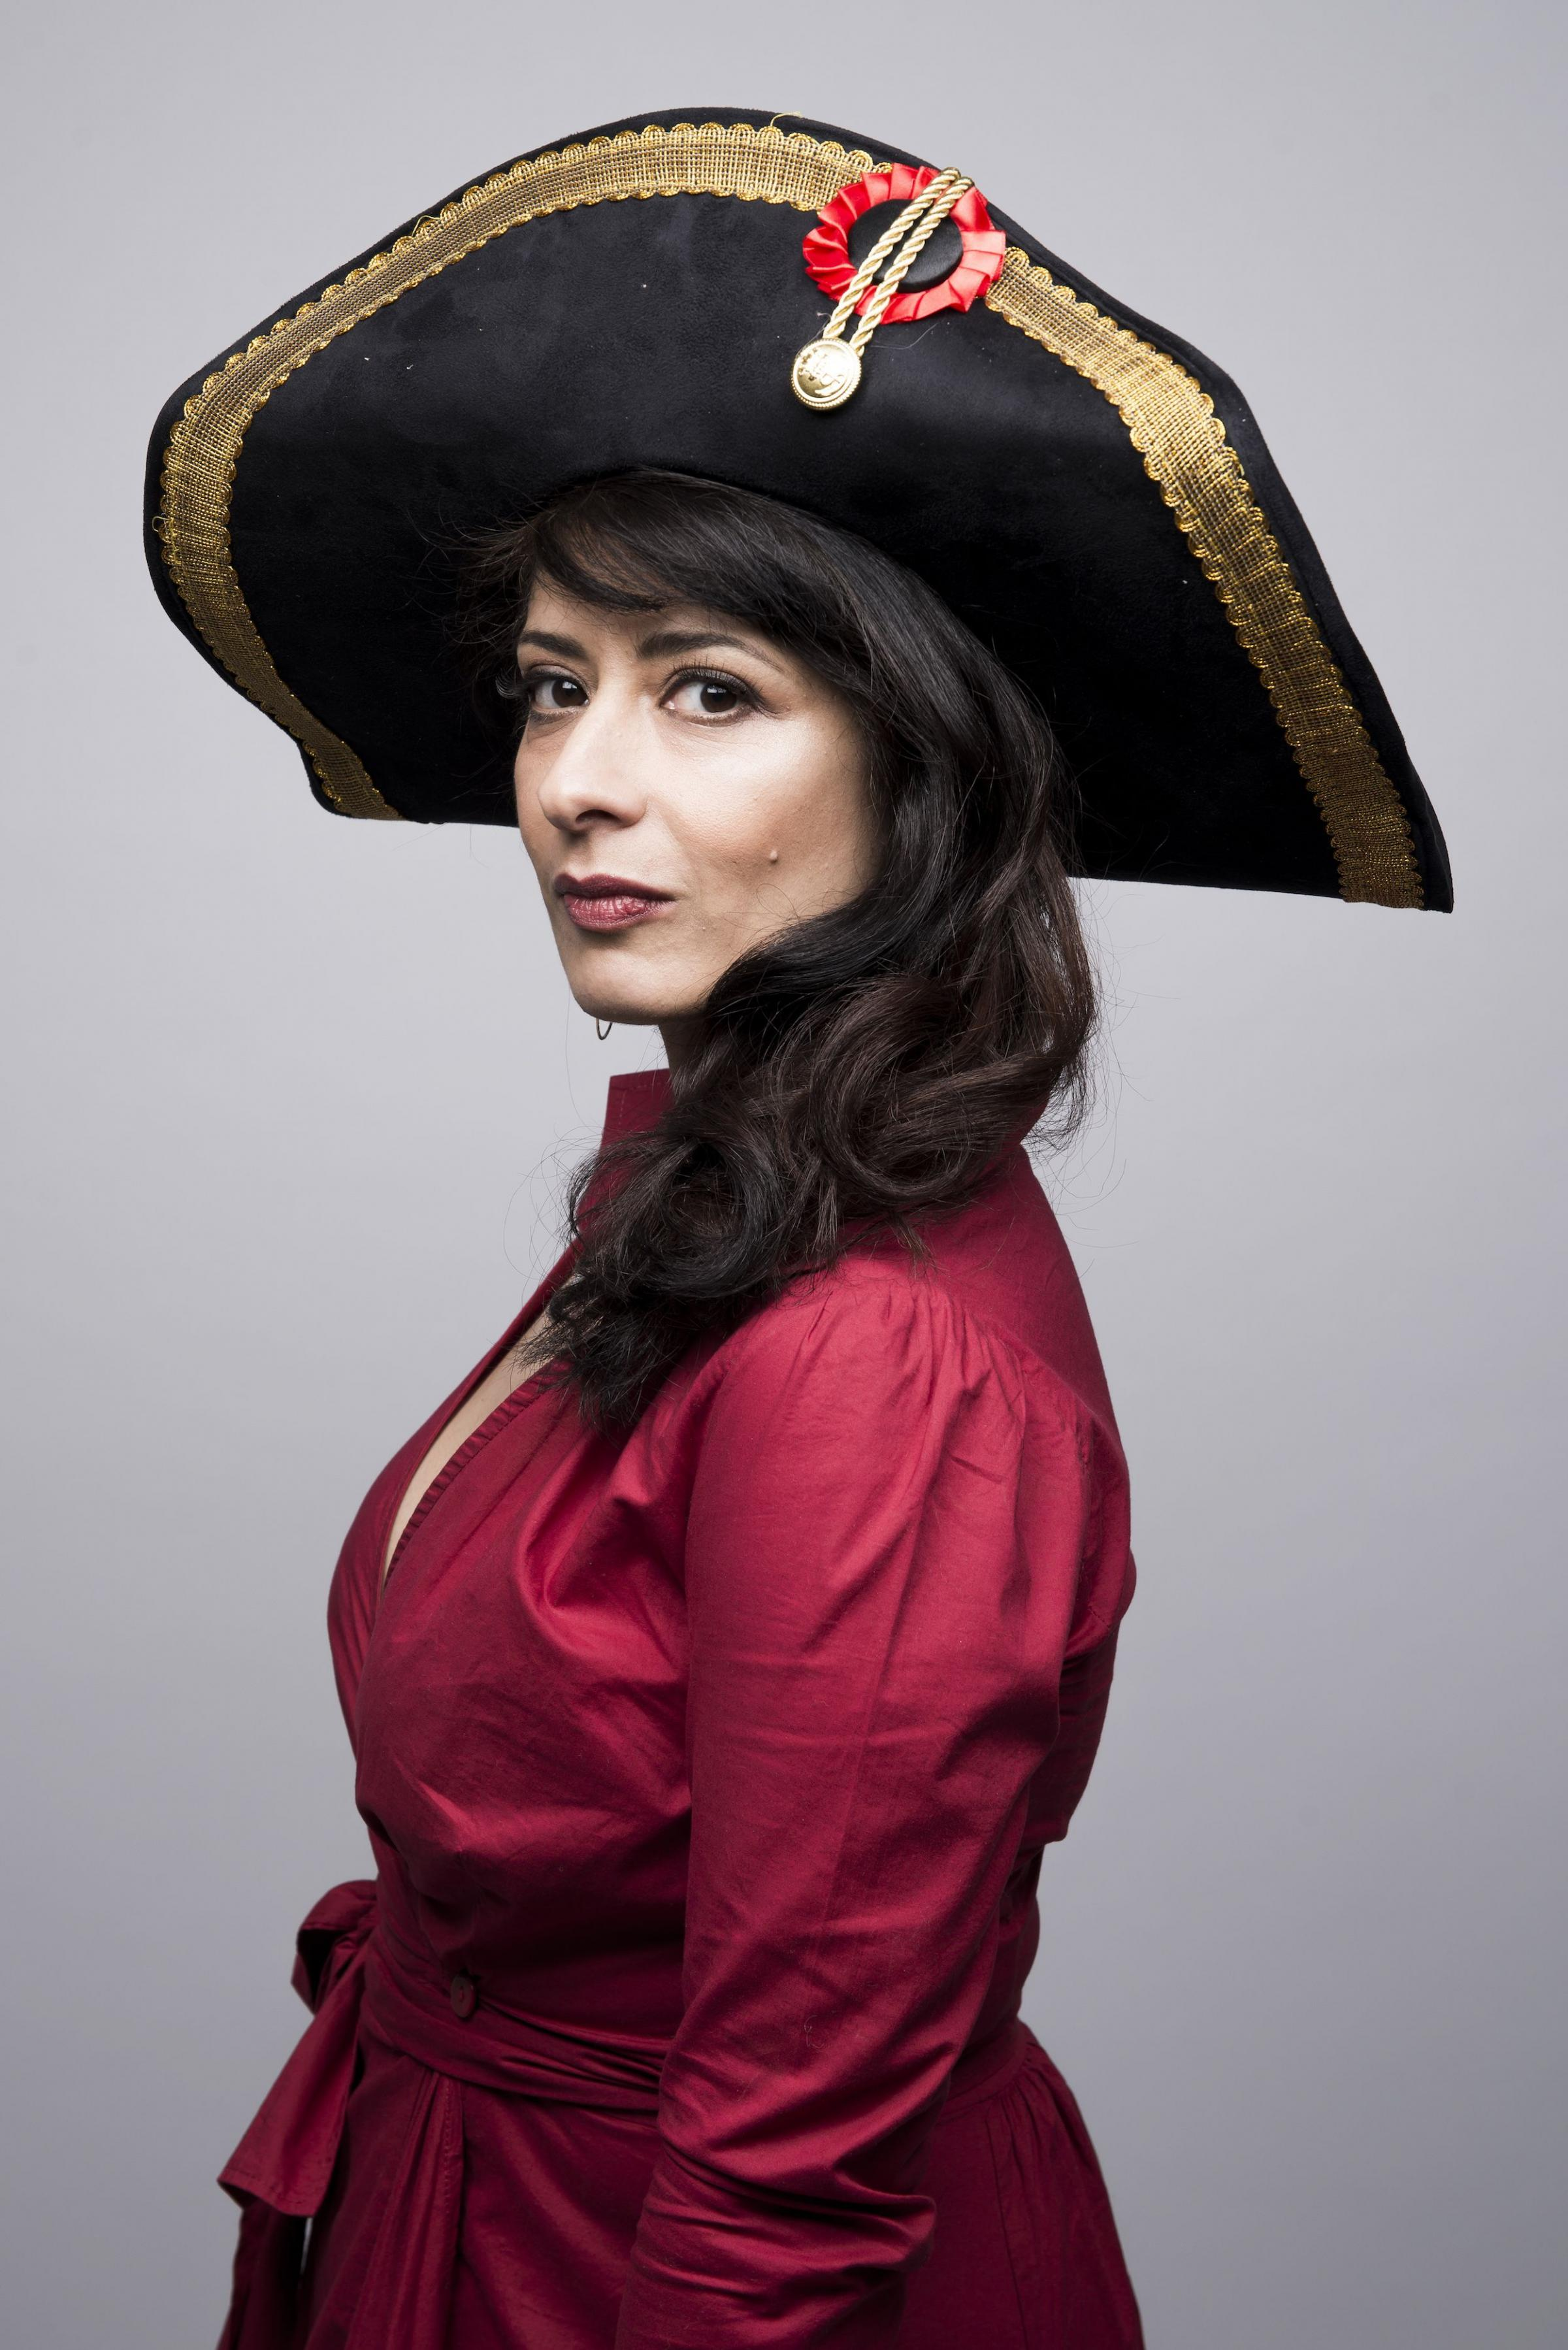 BIG INTERVIEW: Shappi Khorsandi talks comedy ahead of her show at the Bridgwater Arts Centre